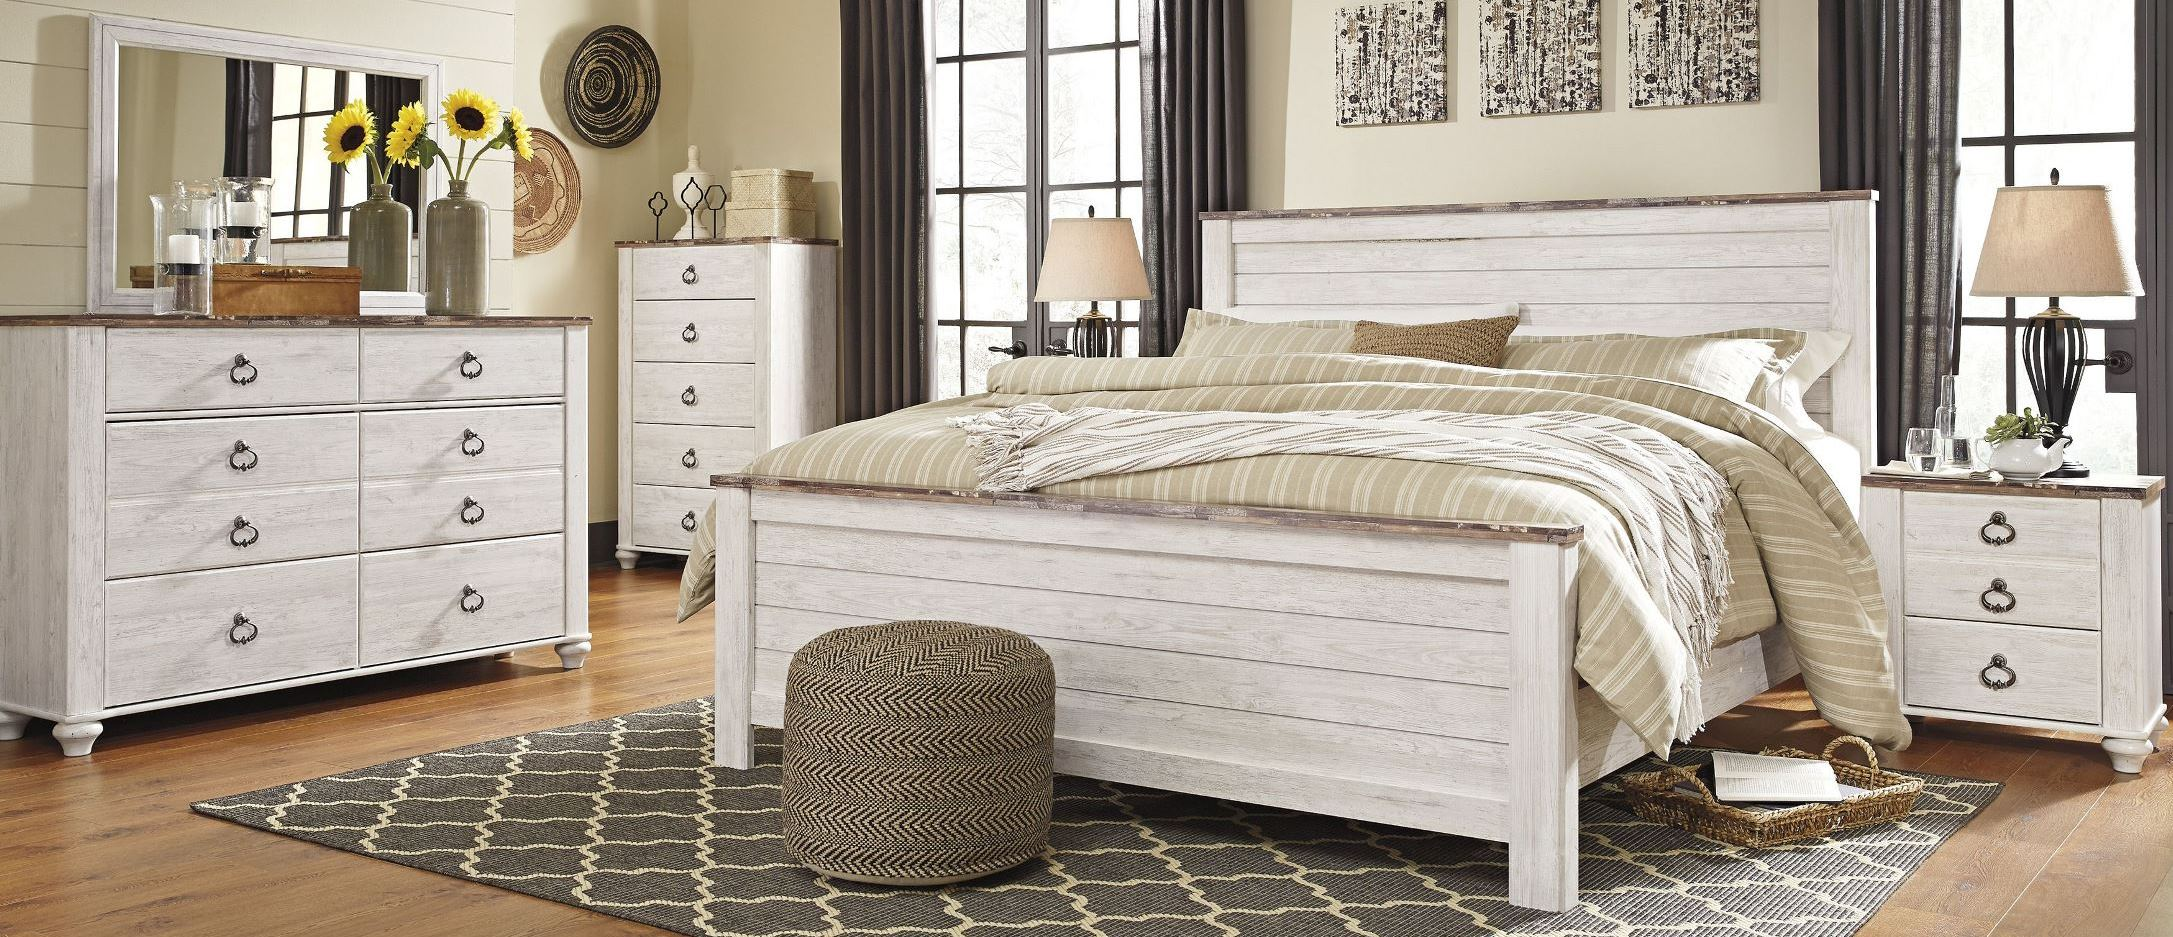 Furniture Bedroom Sets King Panel